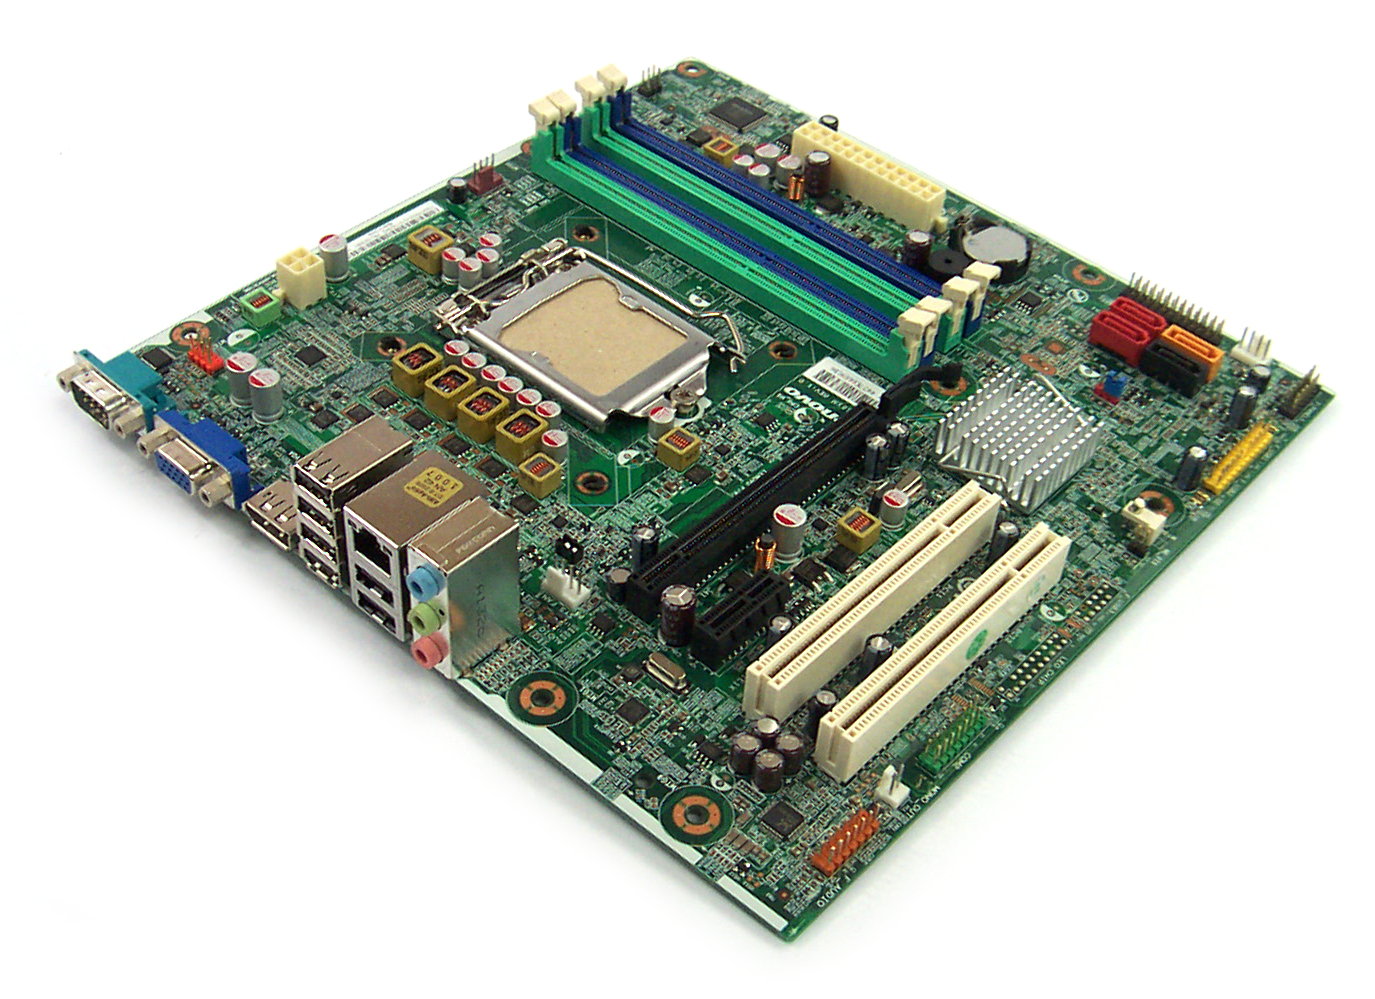 IBM 03T8351 Thinkcentre M91 M91p LGA1155 Motherboard